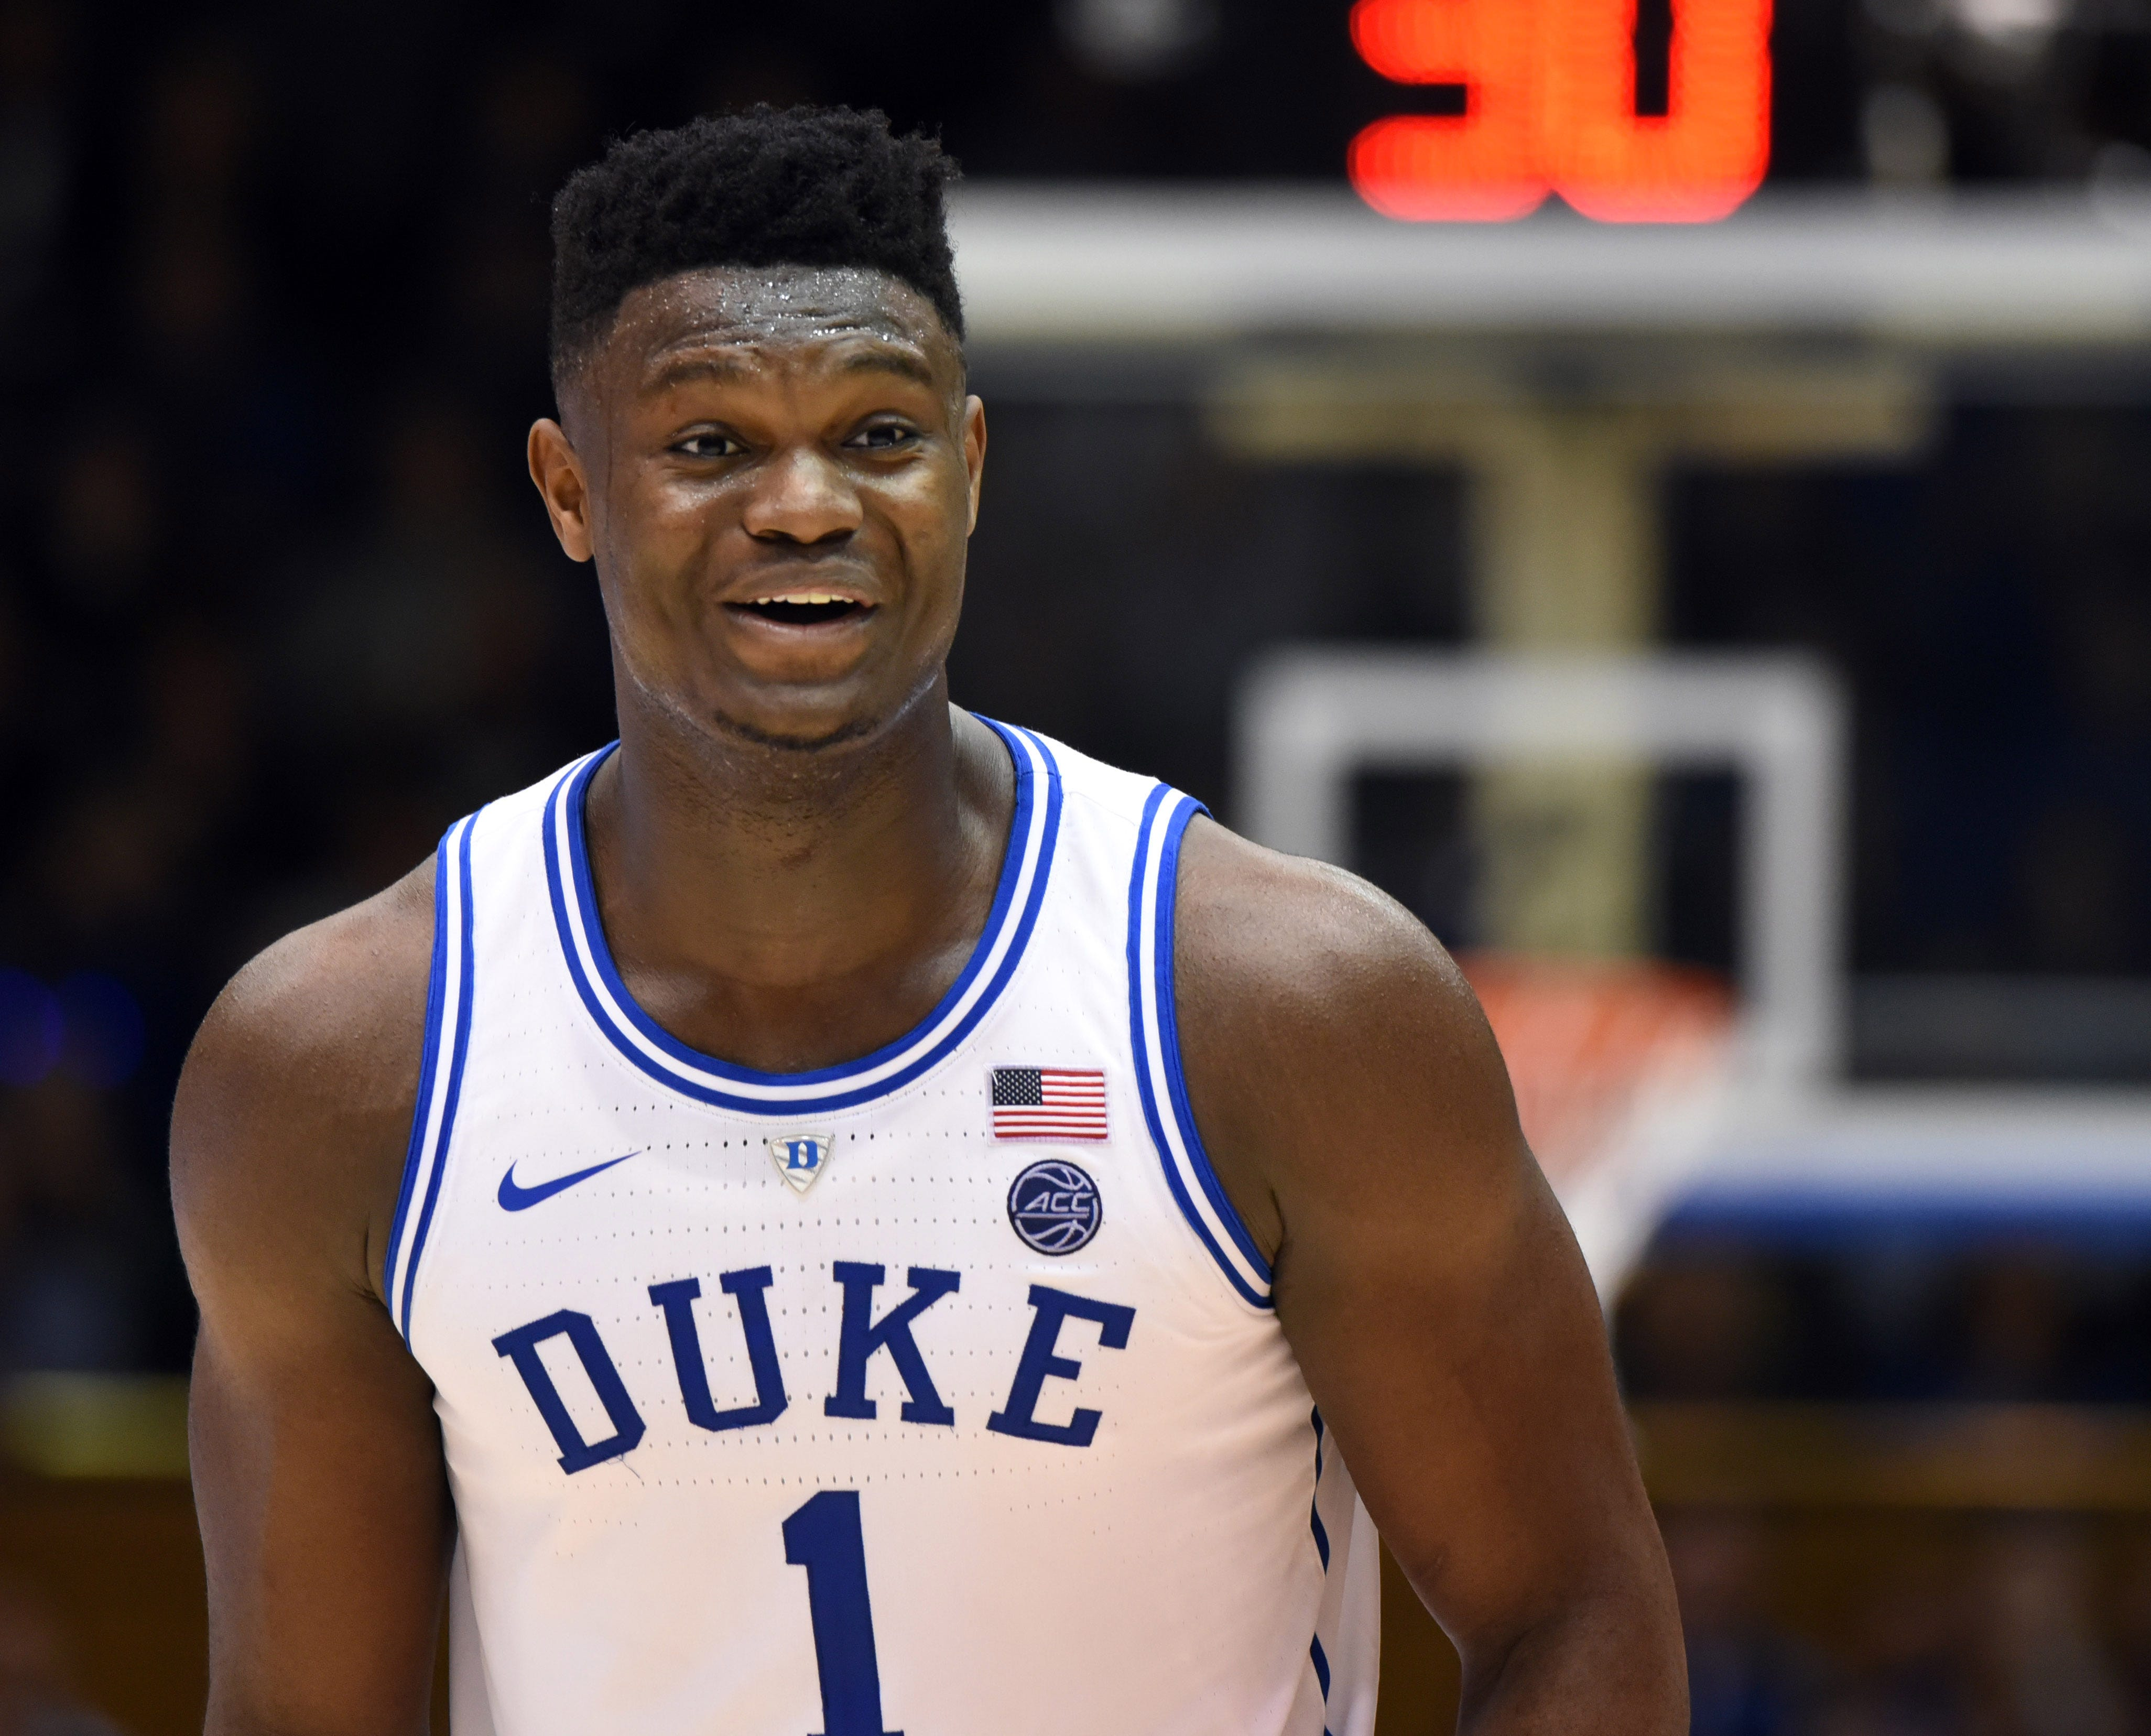 Duke Blue Devils forward Zion Williamson could be taken in high in the first round of the upcoming NBA draft